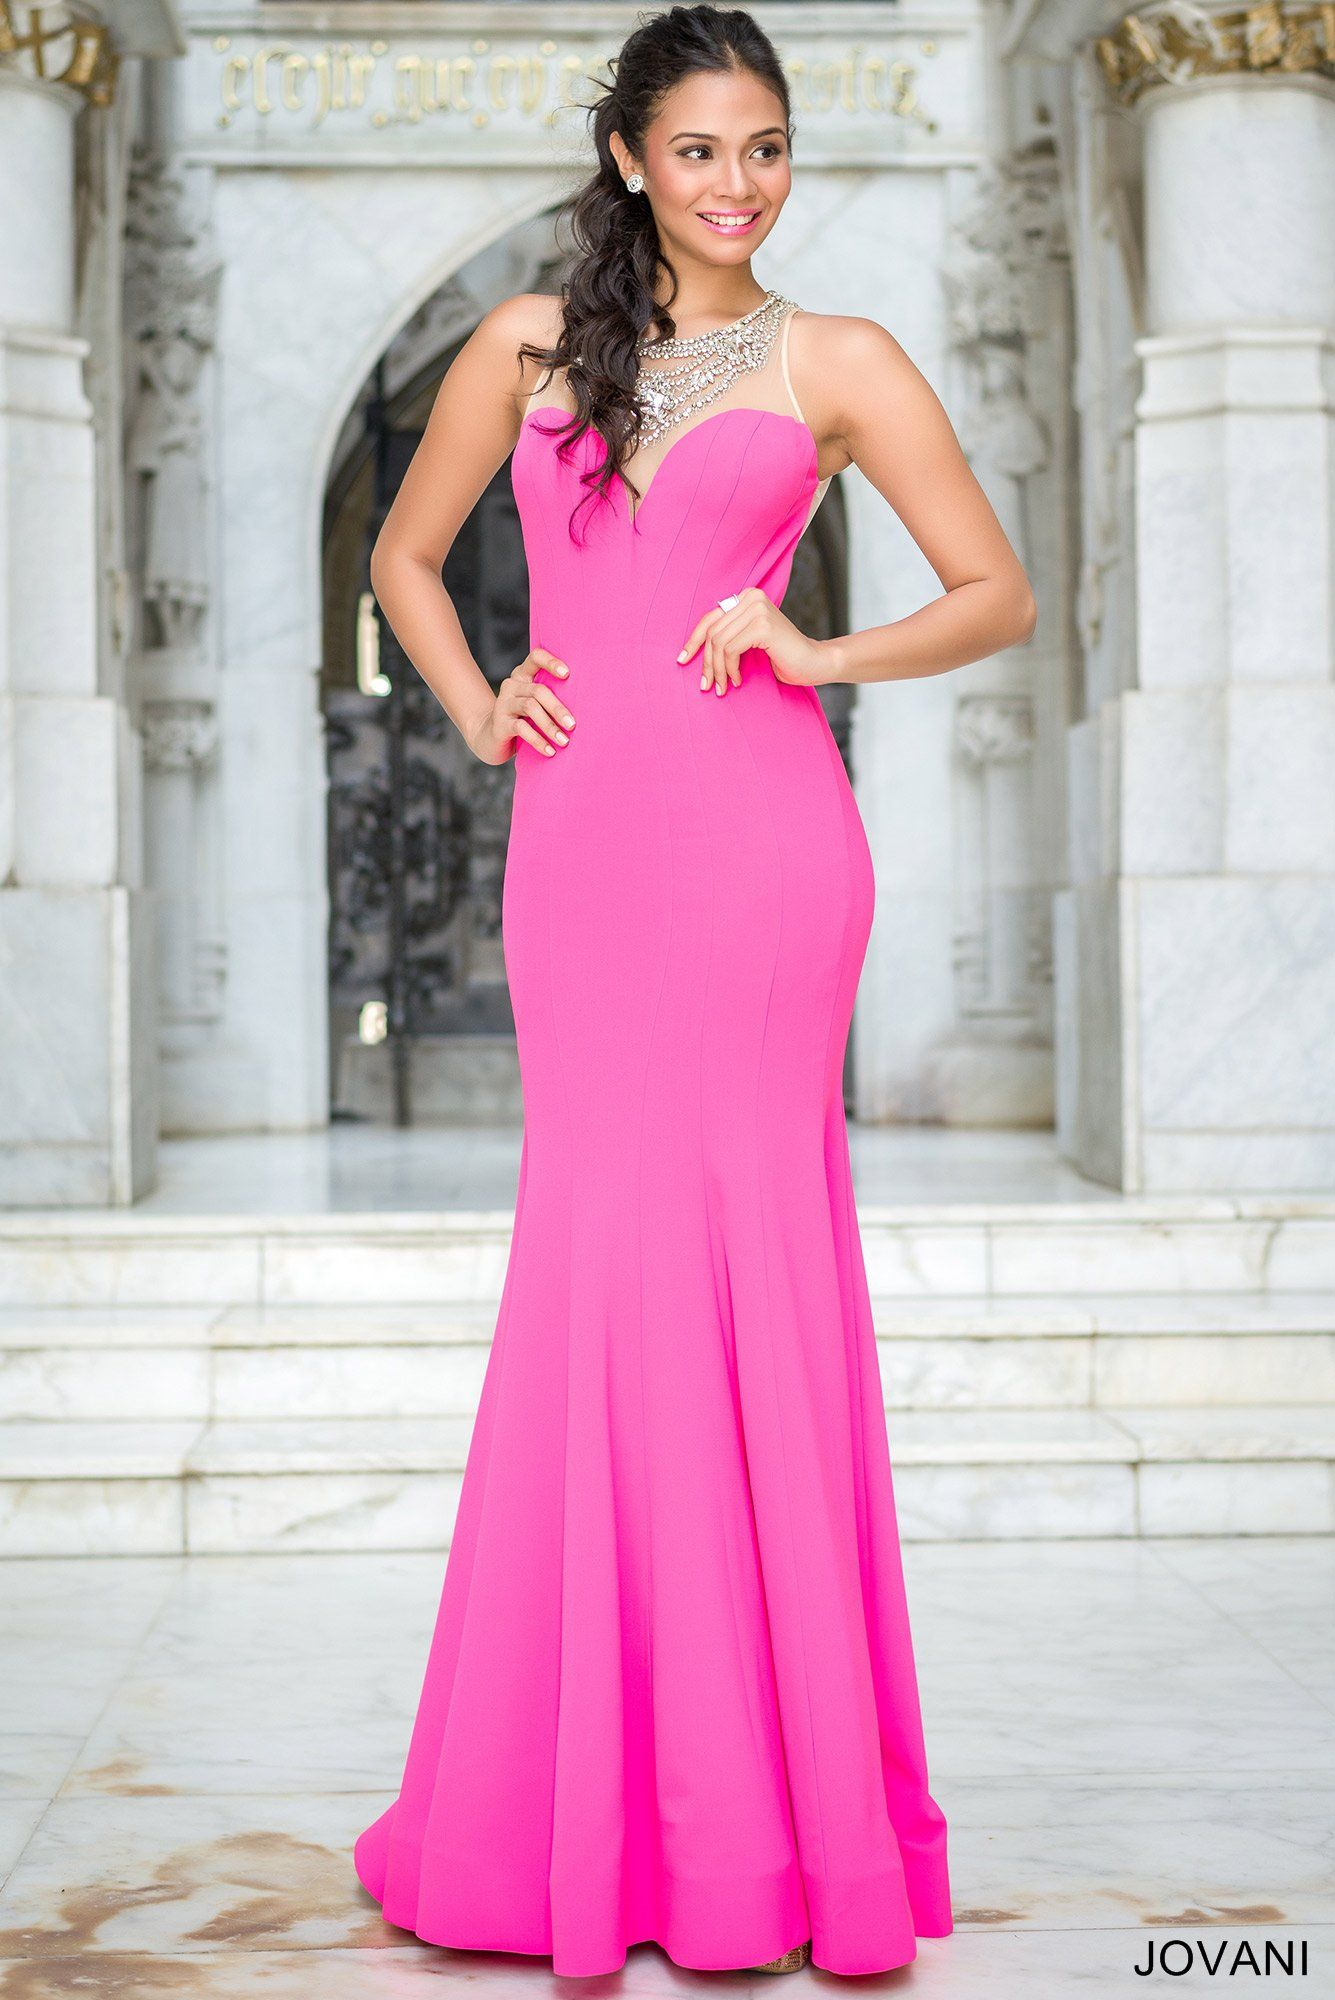 Prom Dresses & Gowns by Jovani - Always Best Dressed | Vestiditos